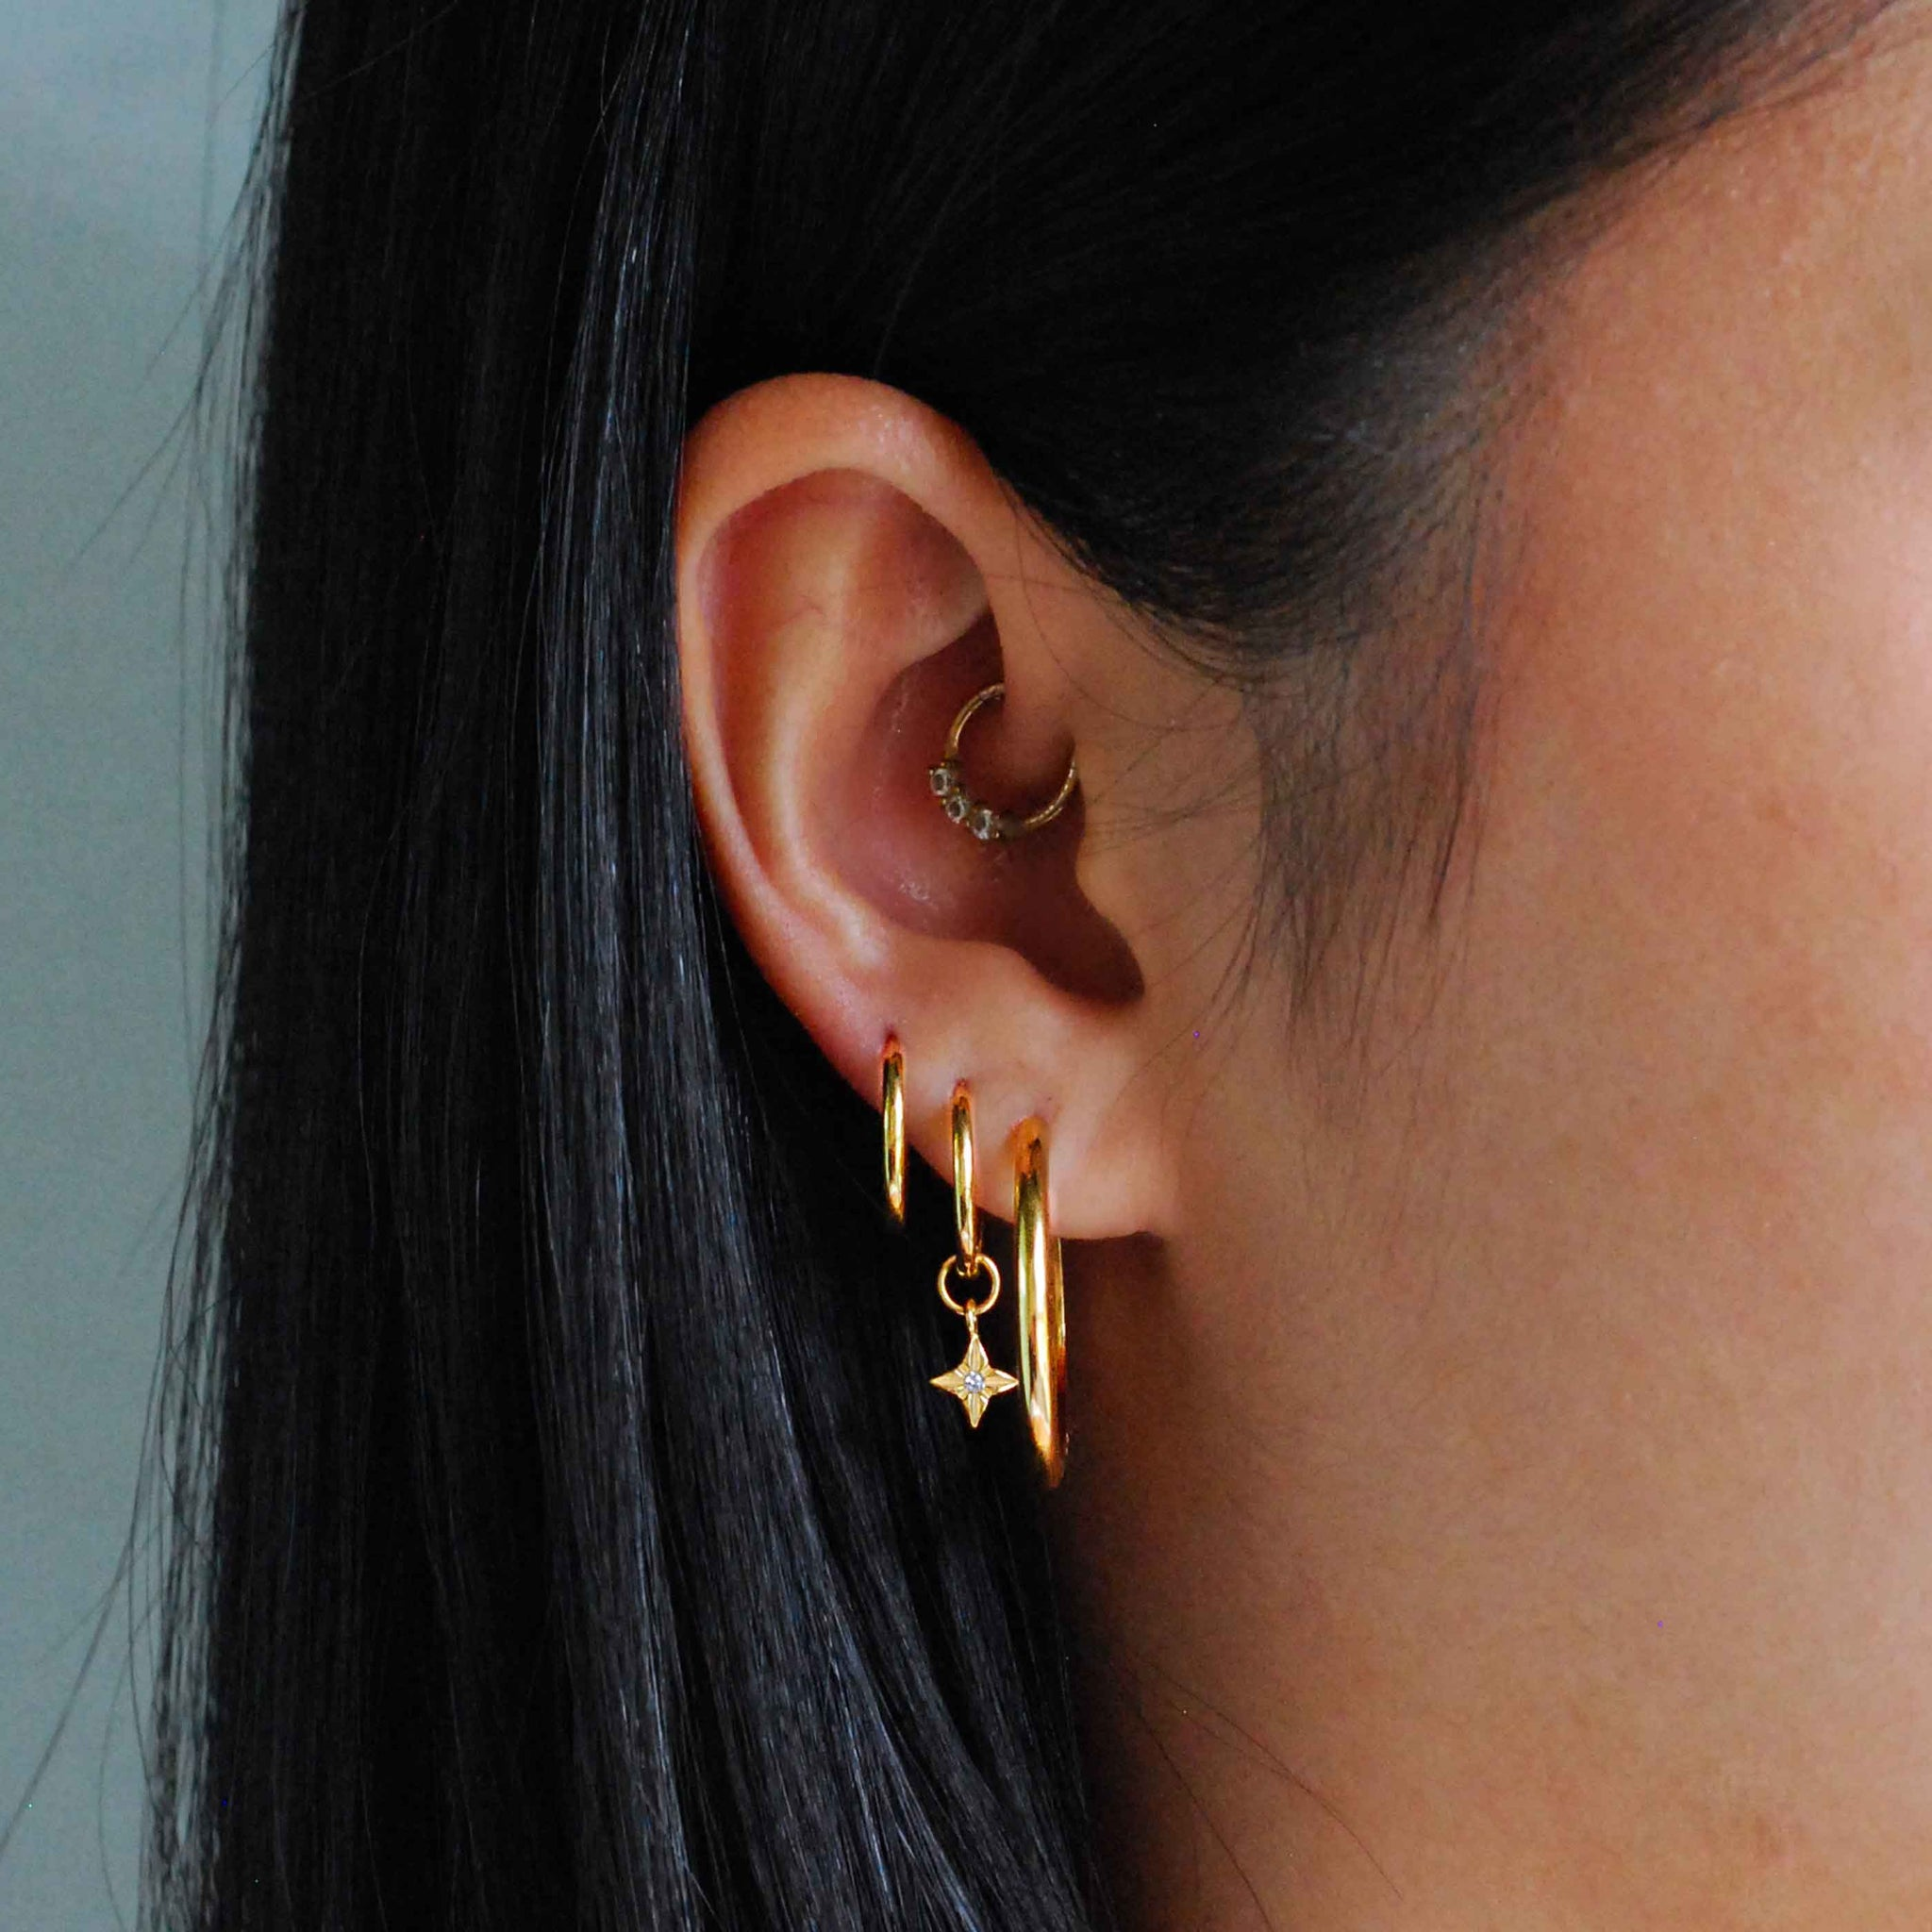 Simple Conch Hoop in Gold worn in third lobe piercing